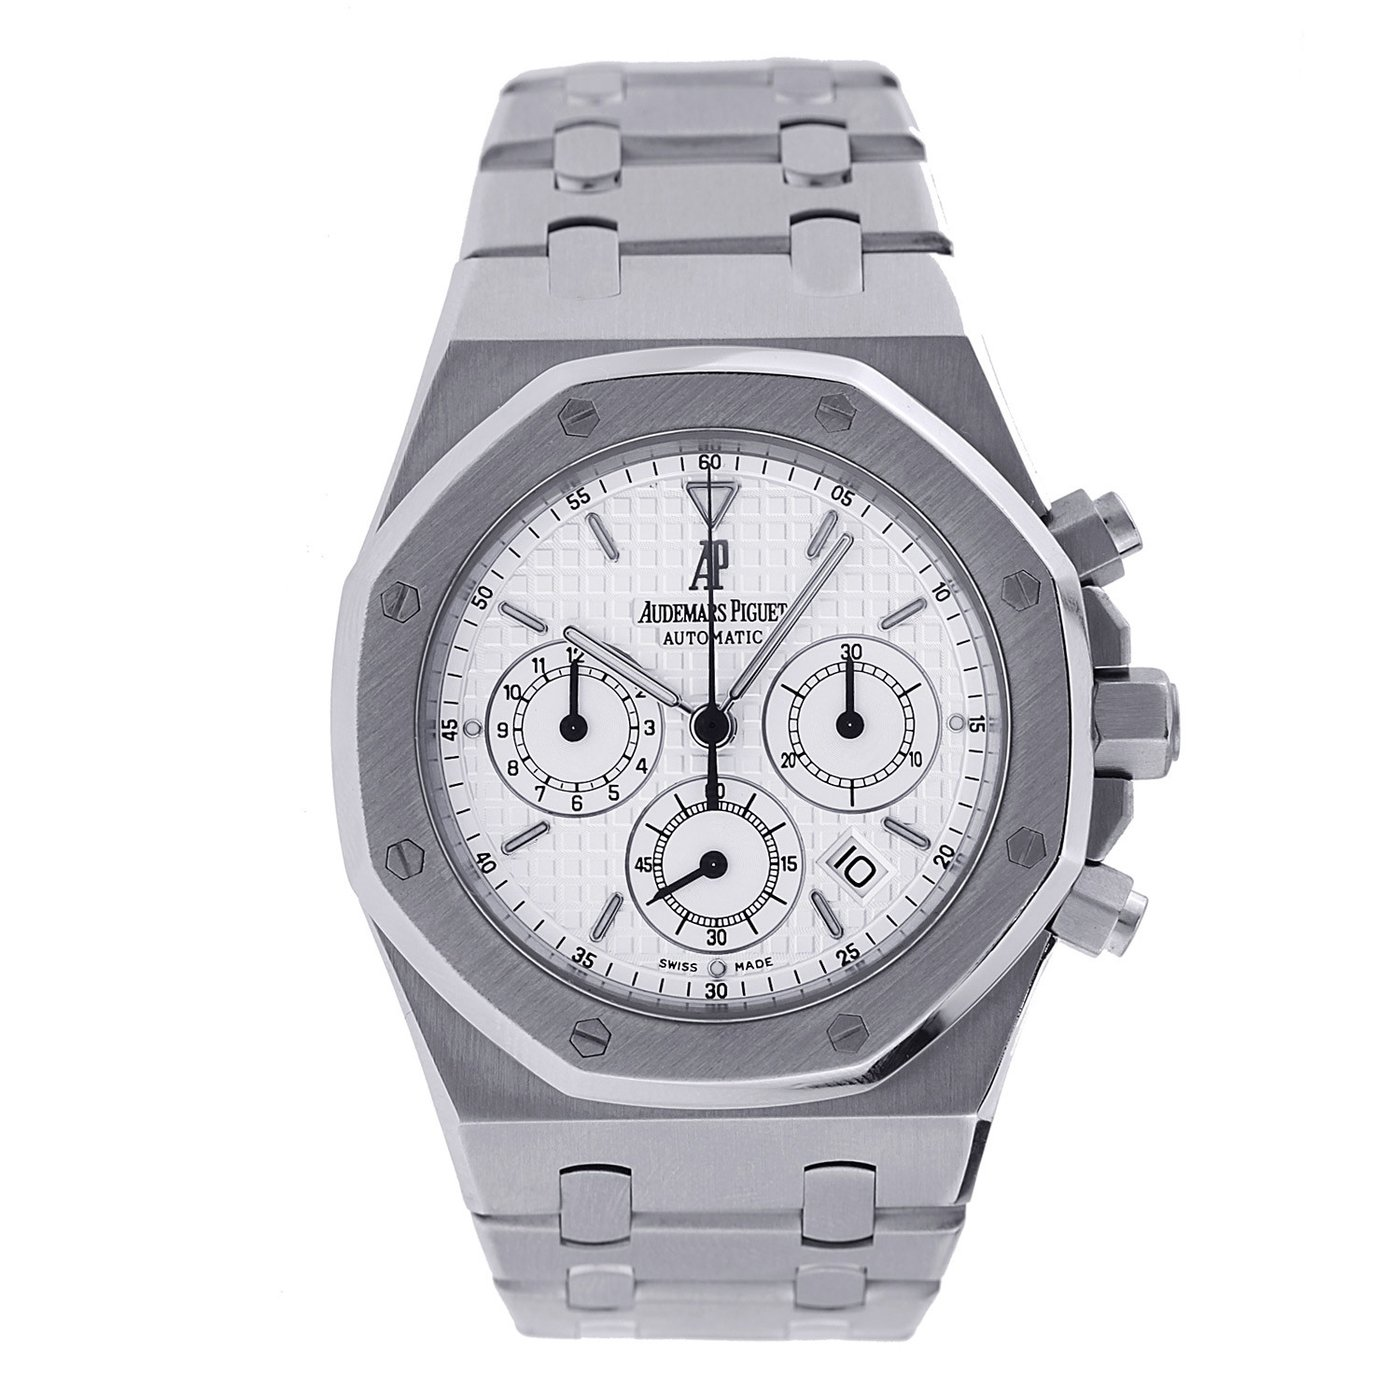 2+Audemars+Piguet+Royal+Oak+39+mm+SS+SILVERF+FRONT.jpg